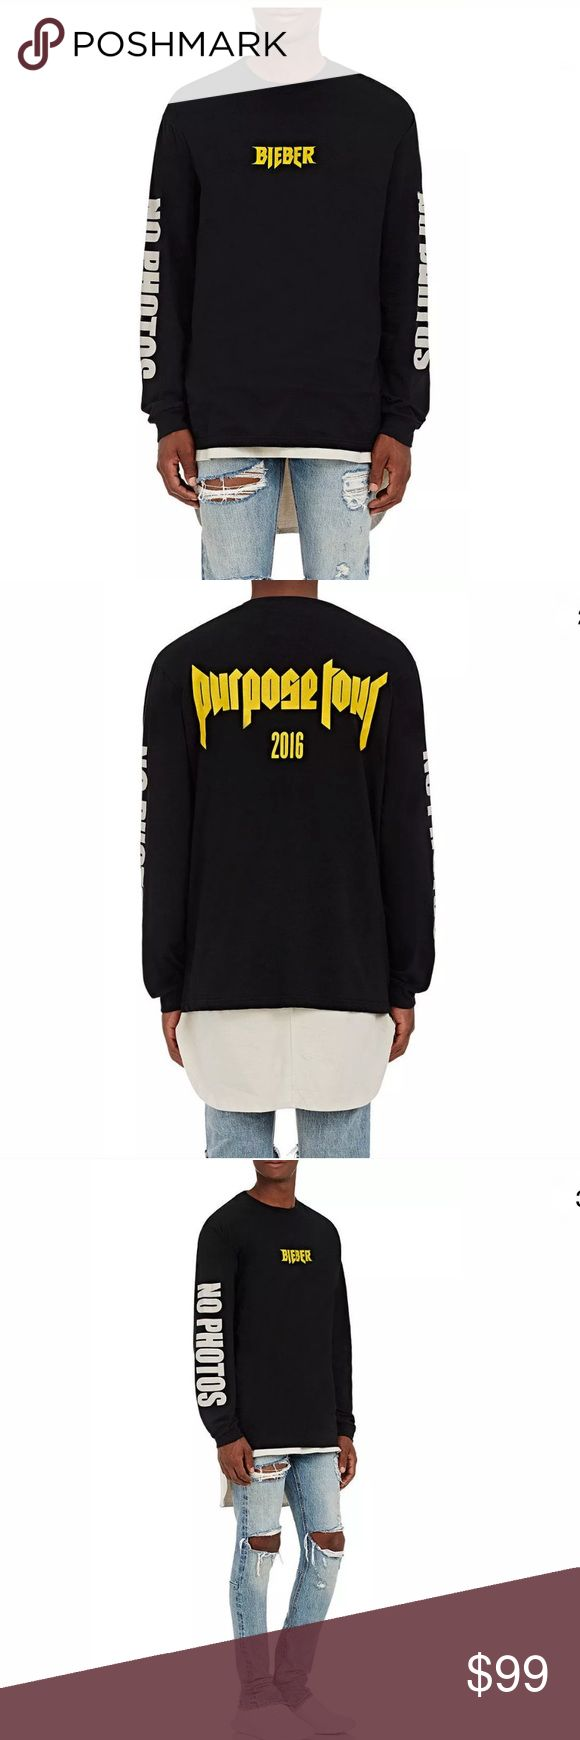 Justin Bieber Barneys Purpose Tour Shirt Brand Justin Bieber Barney's Exclusive Purpose Tour Long Sleeve T-Shirt Size Medium. This is 100% Authentic! I can provide picture of Receipt upon request. Don't be fooled by all the FAKE purpose shirts on eBay from PACSUN, H&M & China. The Purpose Tour Merchandise was Exclusive Collab with Barneys. Be one of the few to own this Barney's Justin Bieber Collab Shirt. Check Out Our eBay Store We Have Other Purpose Tour Merchandise. Any questions please…